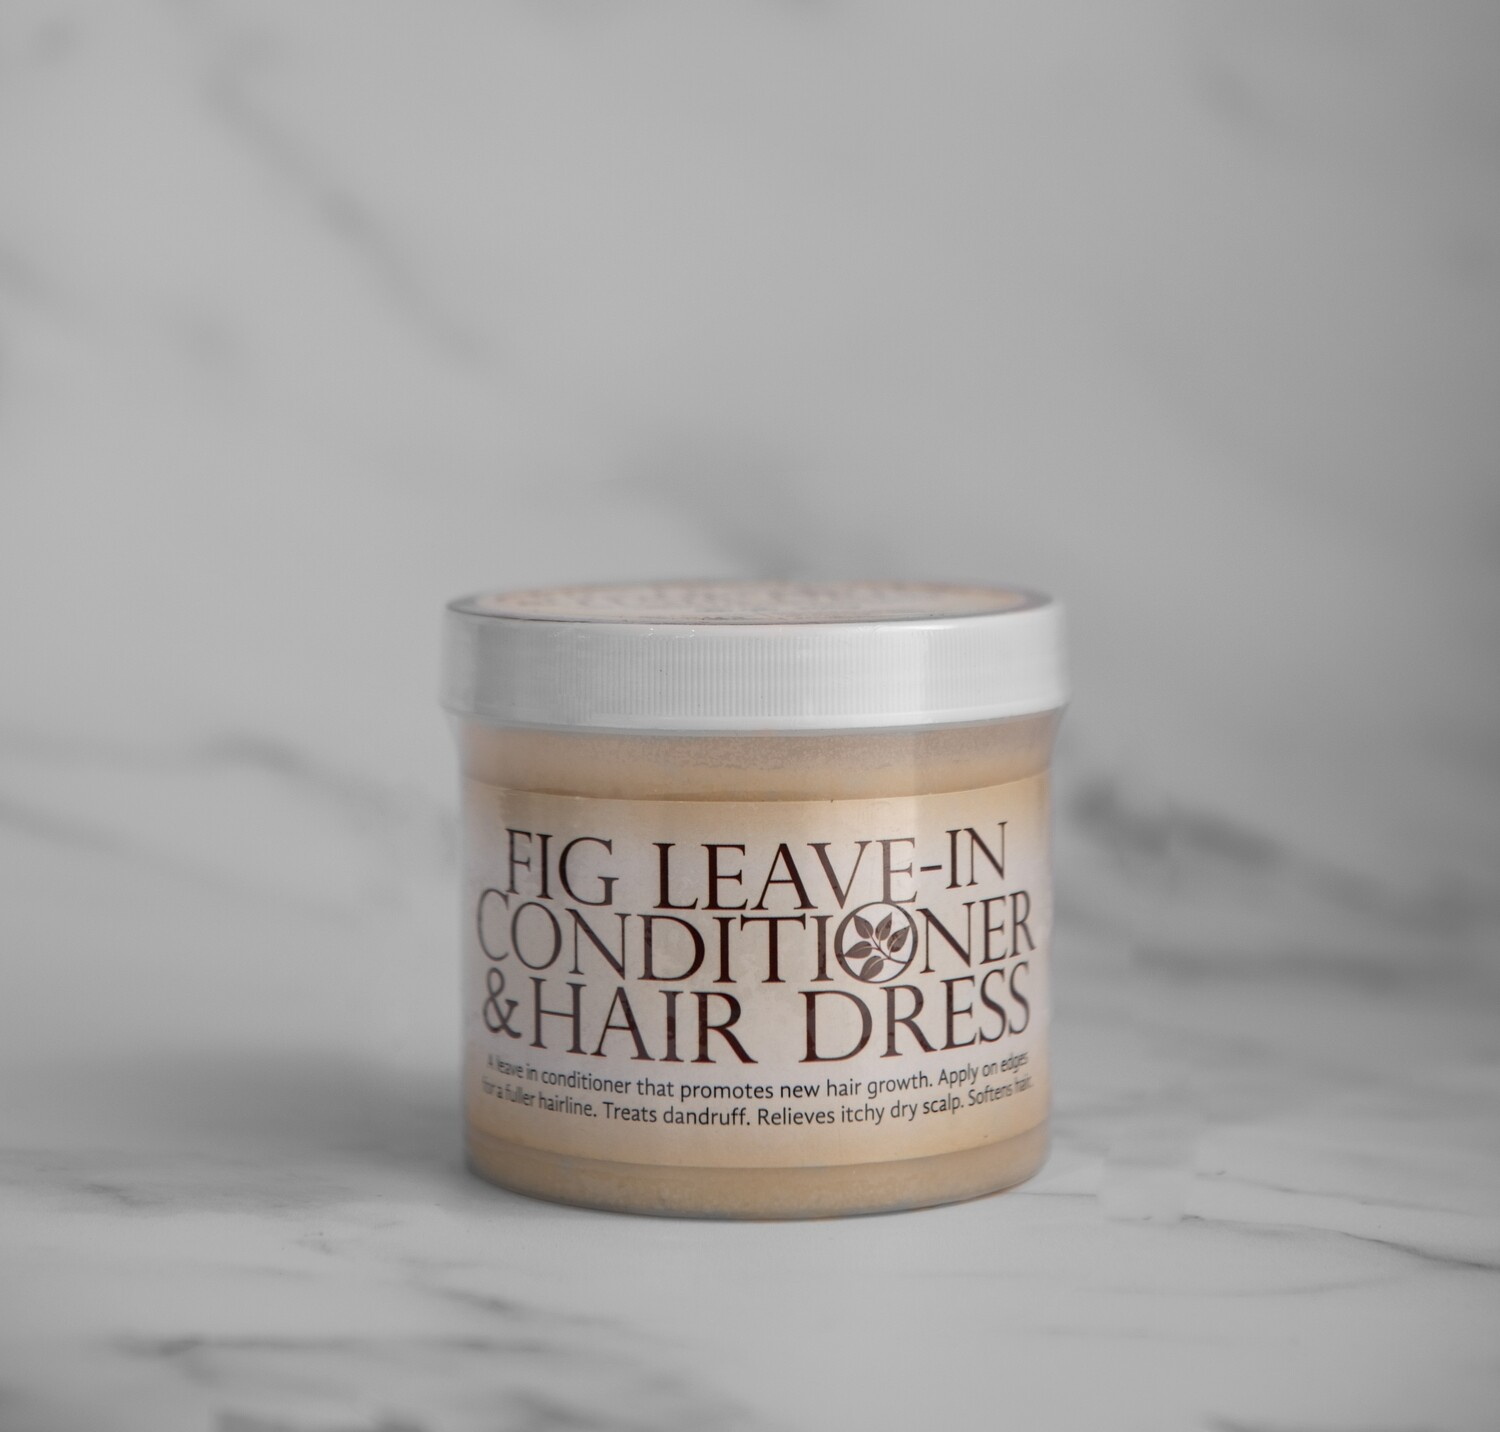 Fig Leave-In Conditioner & Hair Dress (200G)